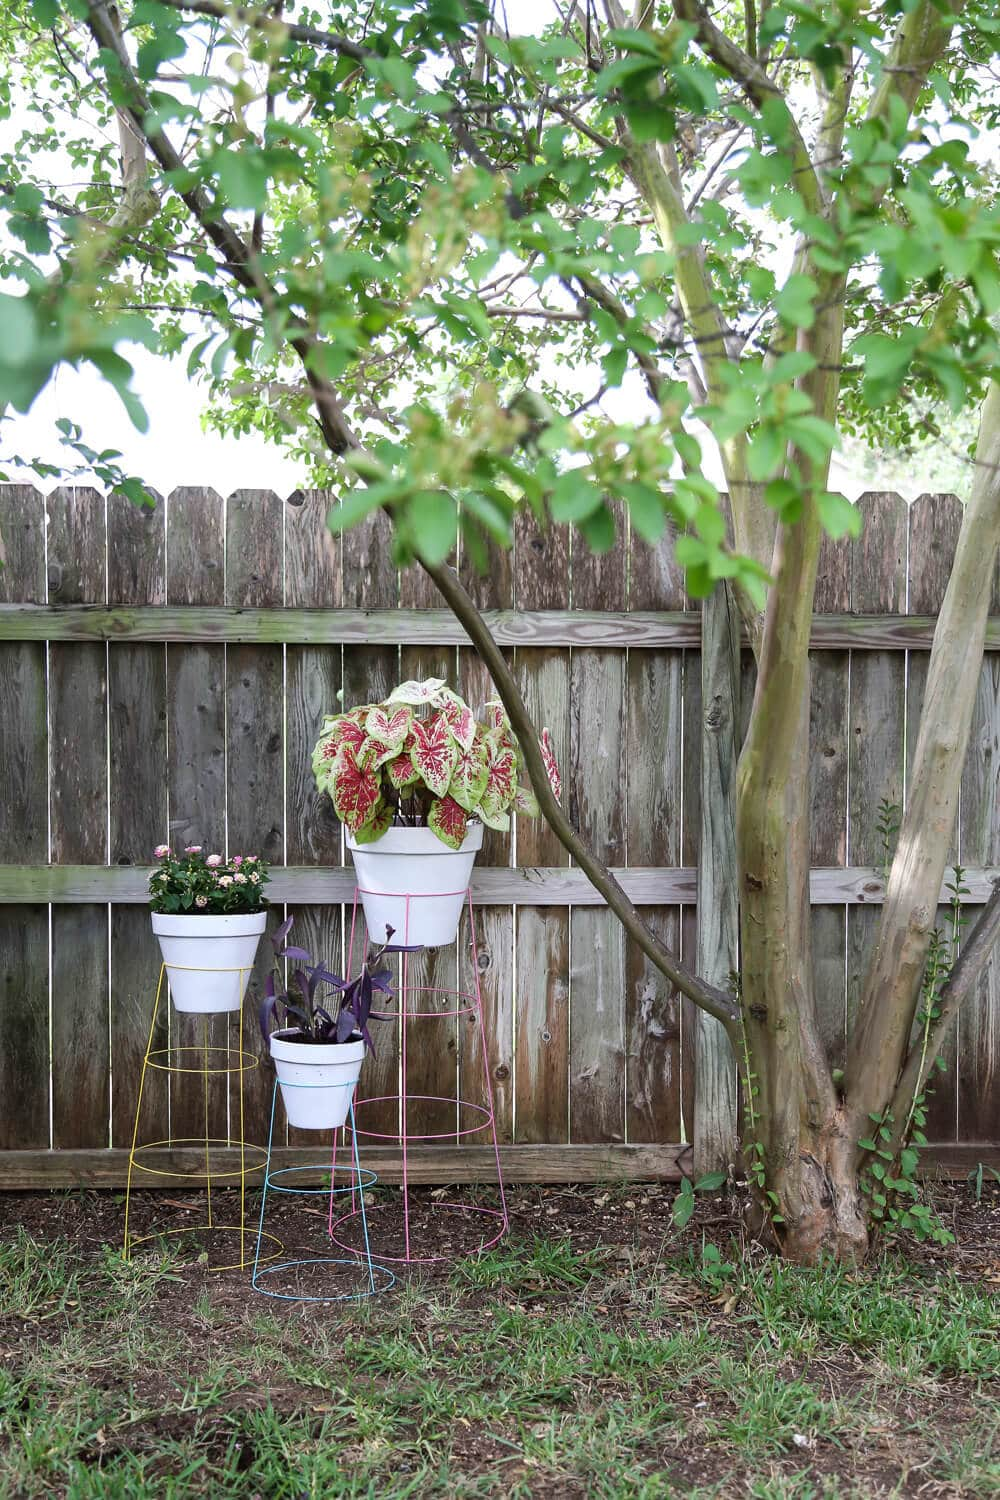 How to make a DIY plant stand for the backyard